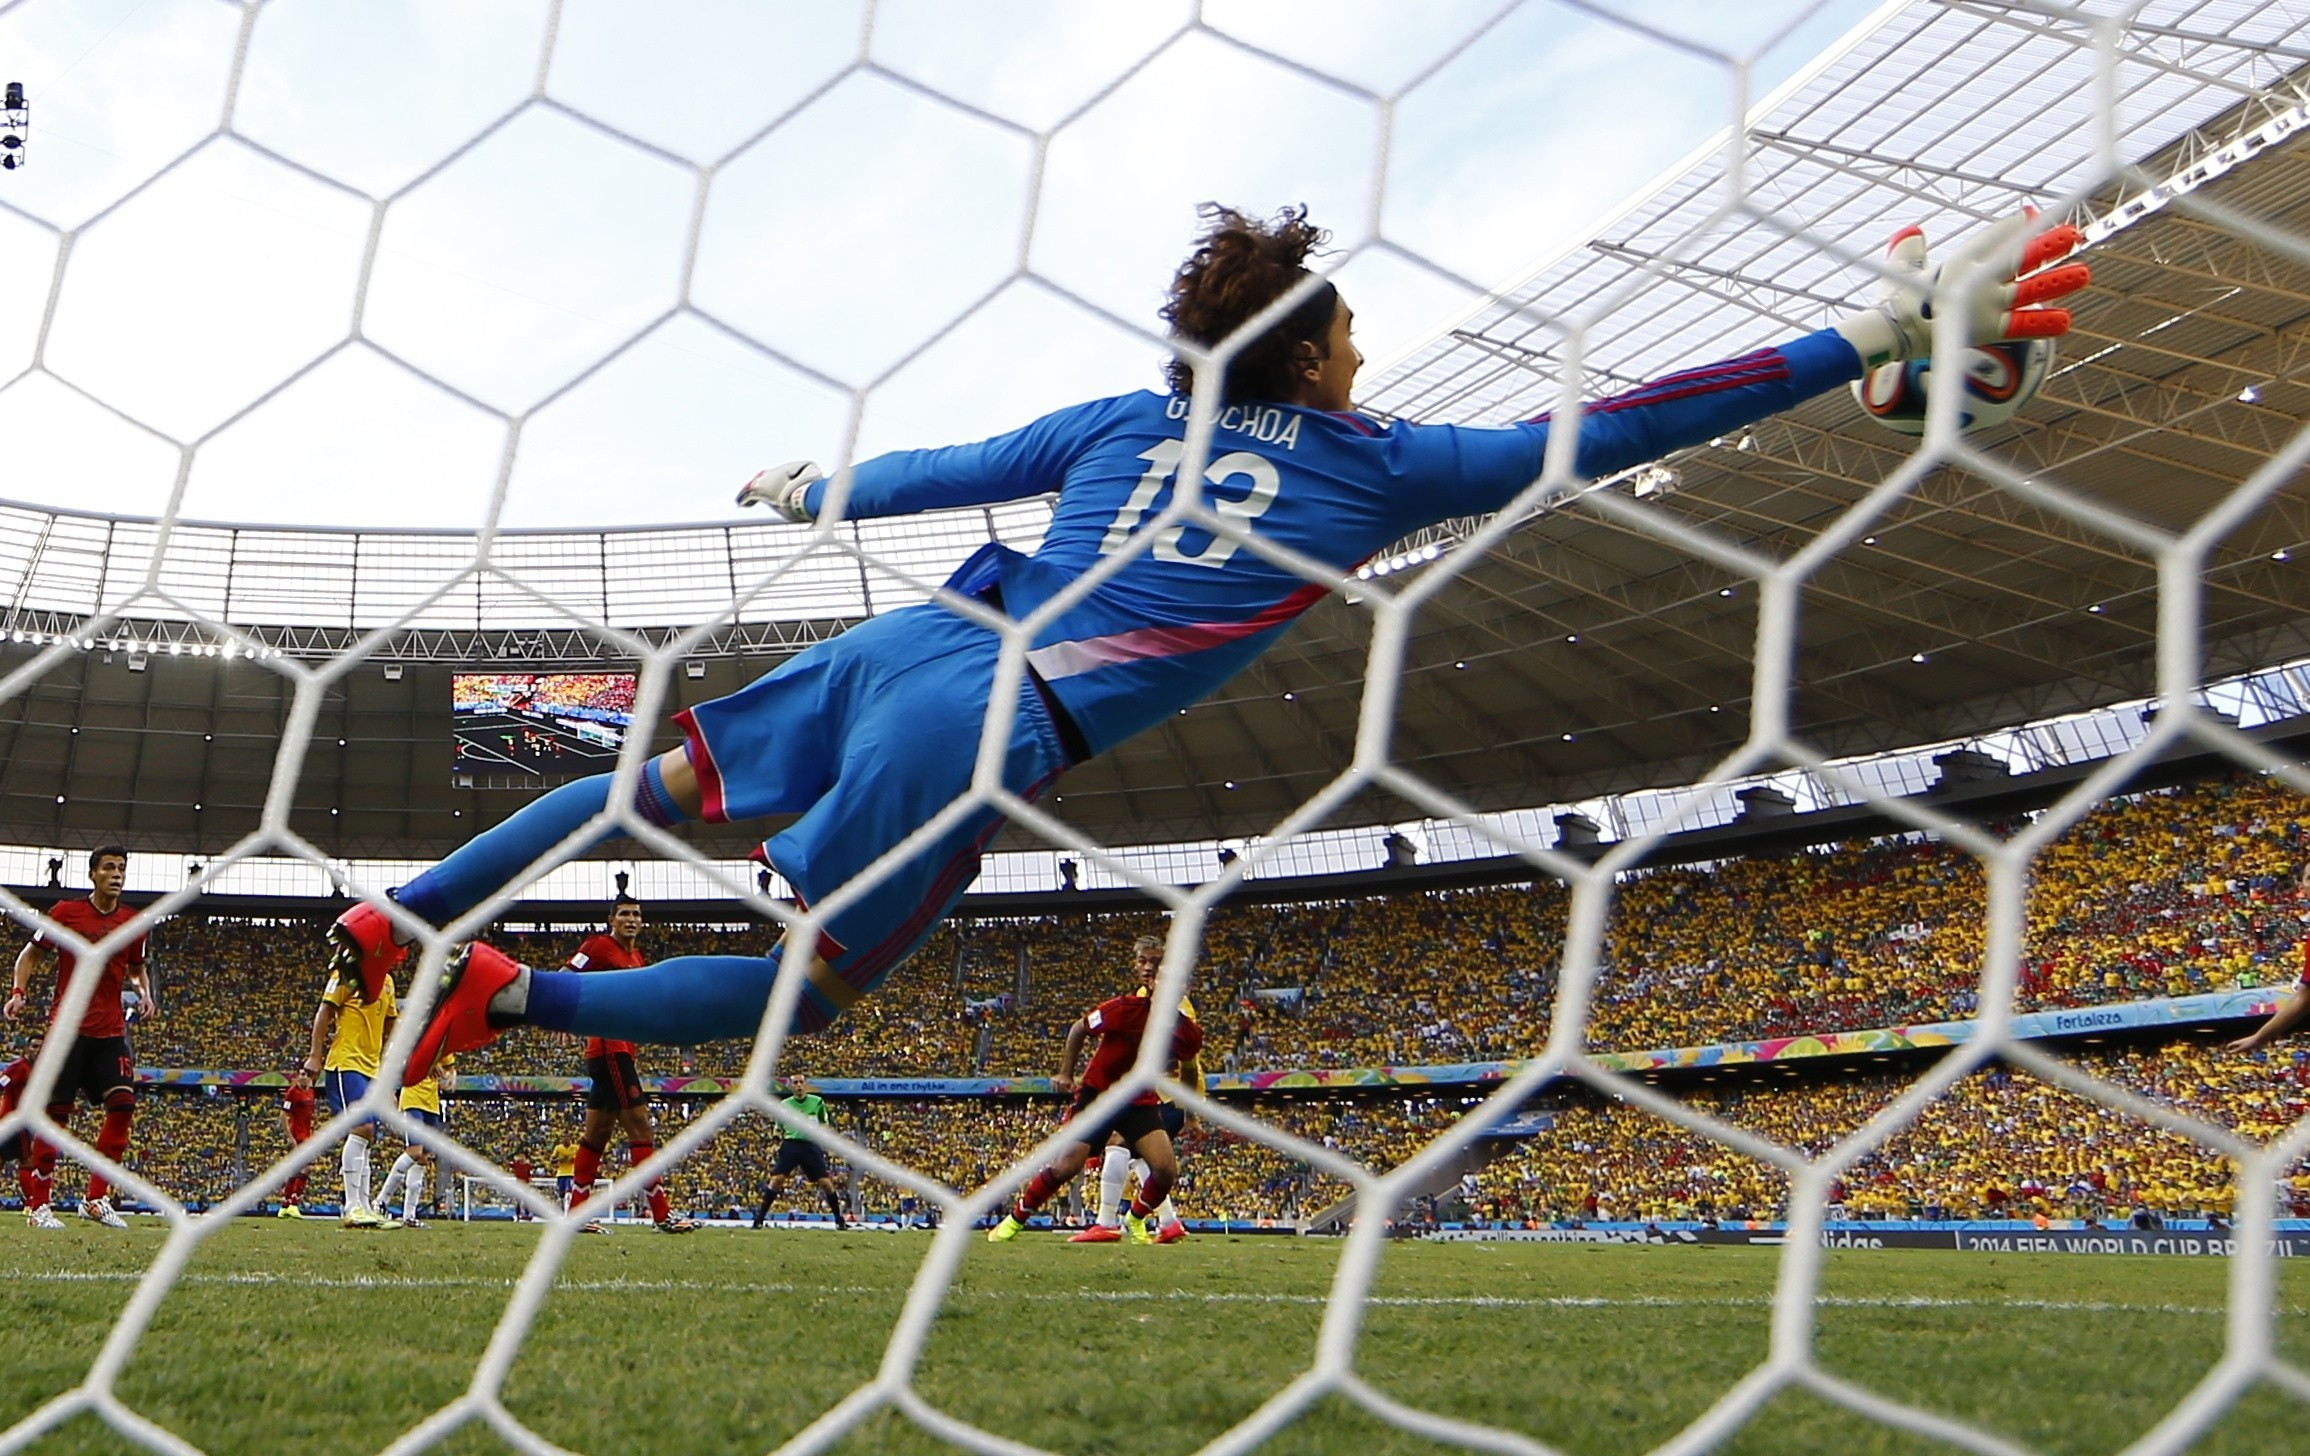 … Mexico goalkeeper Guillermo Ochoa makes a save on a shot by Brazil's  Neymar during Tuesday's match